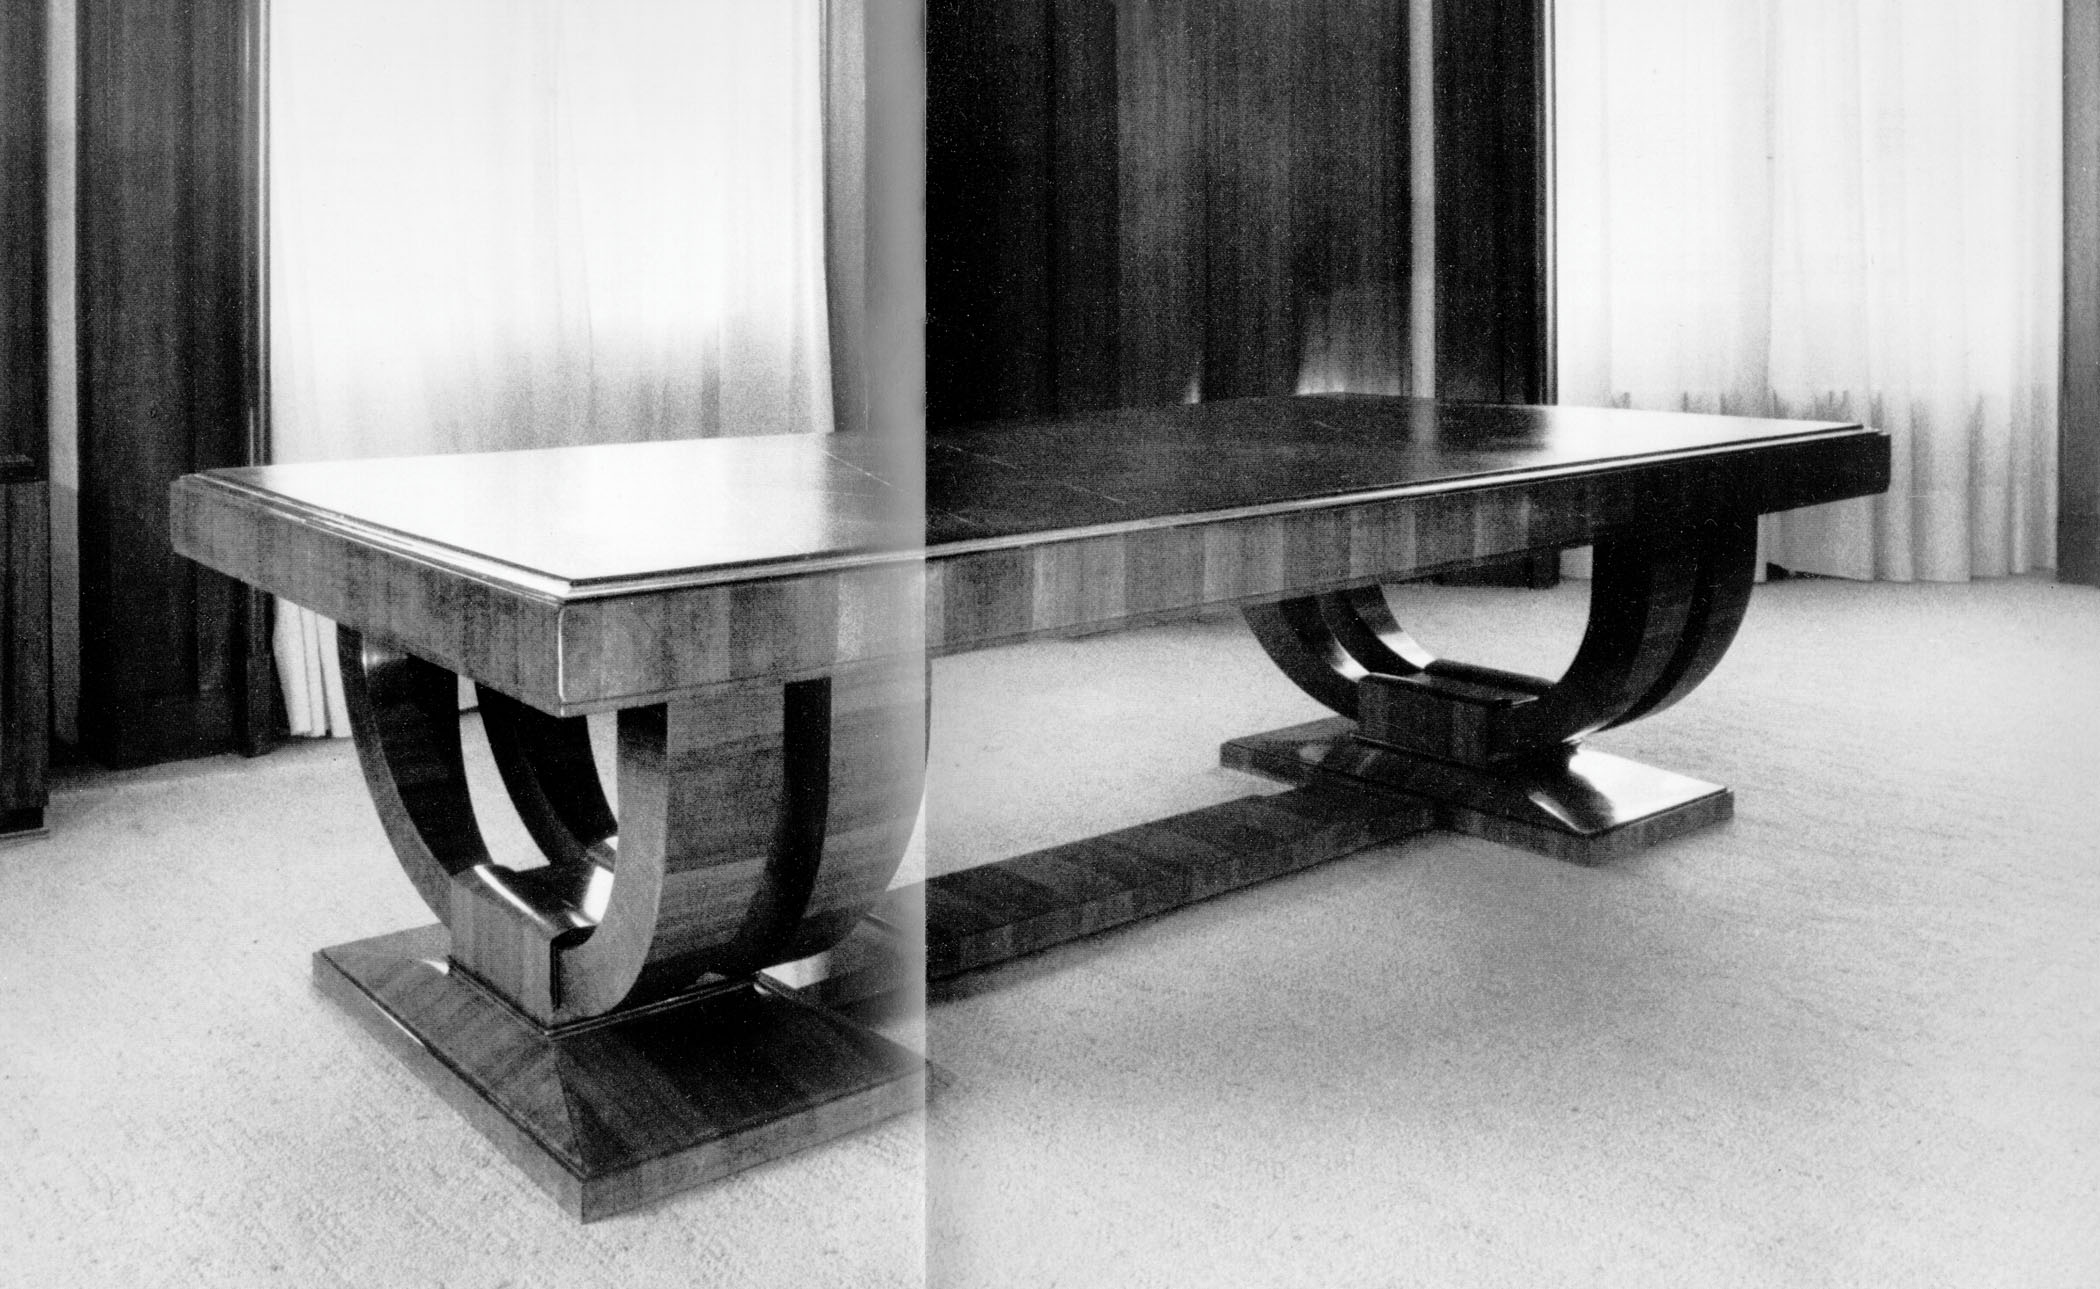 Émile-Jacques Ruhlmann, Dining Table. Rosewood, Green morocco, Silver plated Bronze. Specific year unknown. Pre-1933.